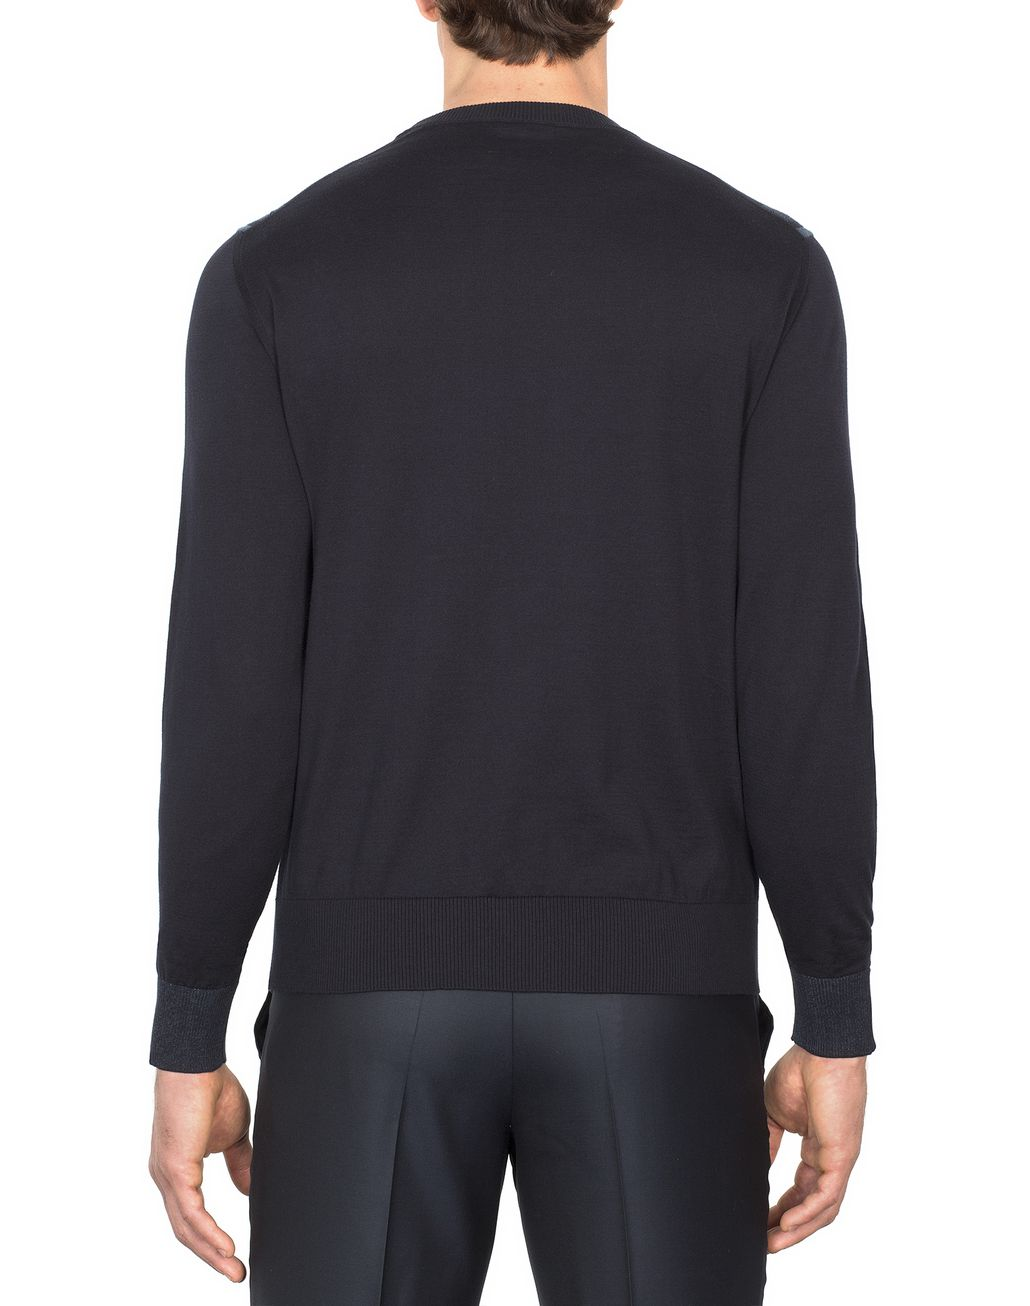 BRIONI Navy-Blue Cotton and Silk Striped Sweater with Two-Tone Trim Knitwear [*** pickupInStoreShippingNotGuaranteed_info ***] d